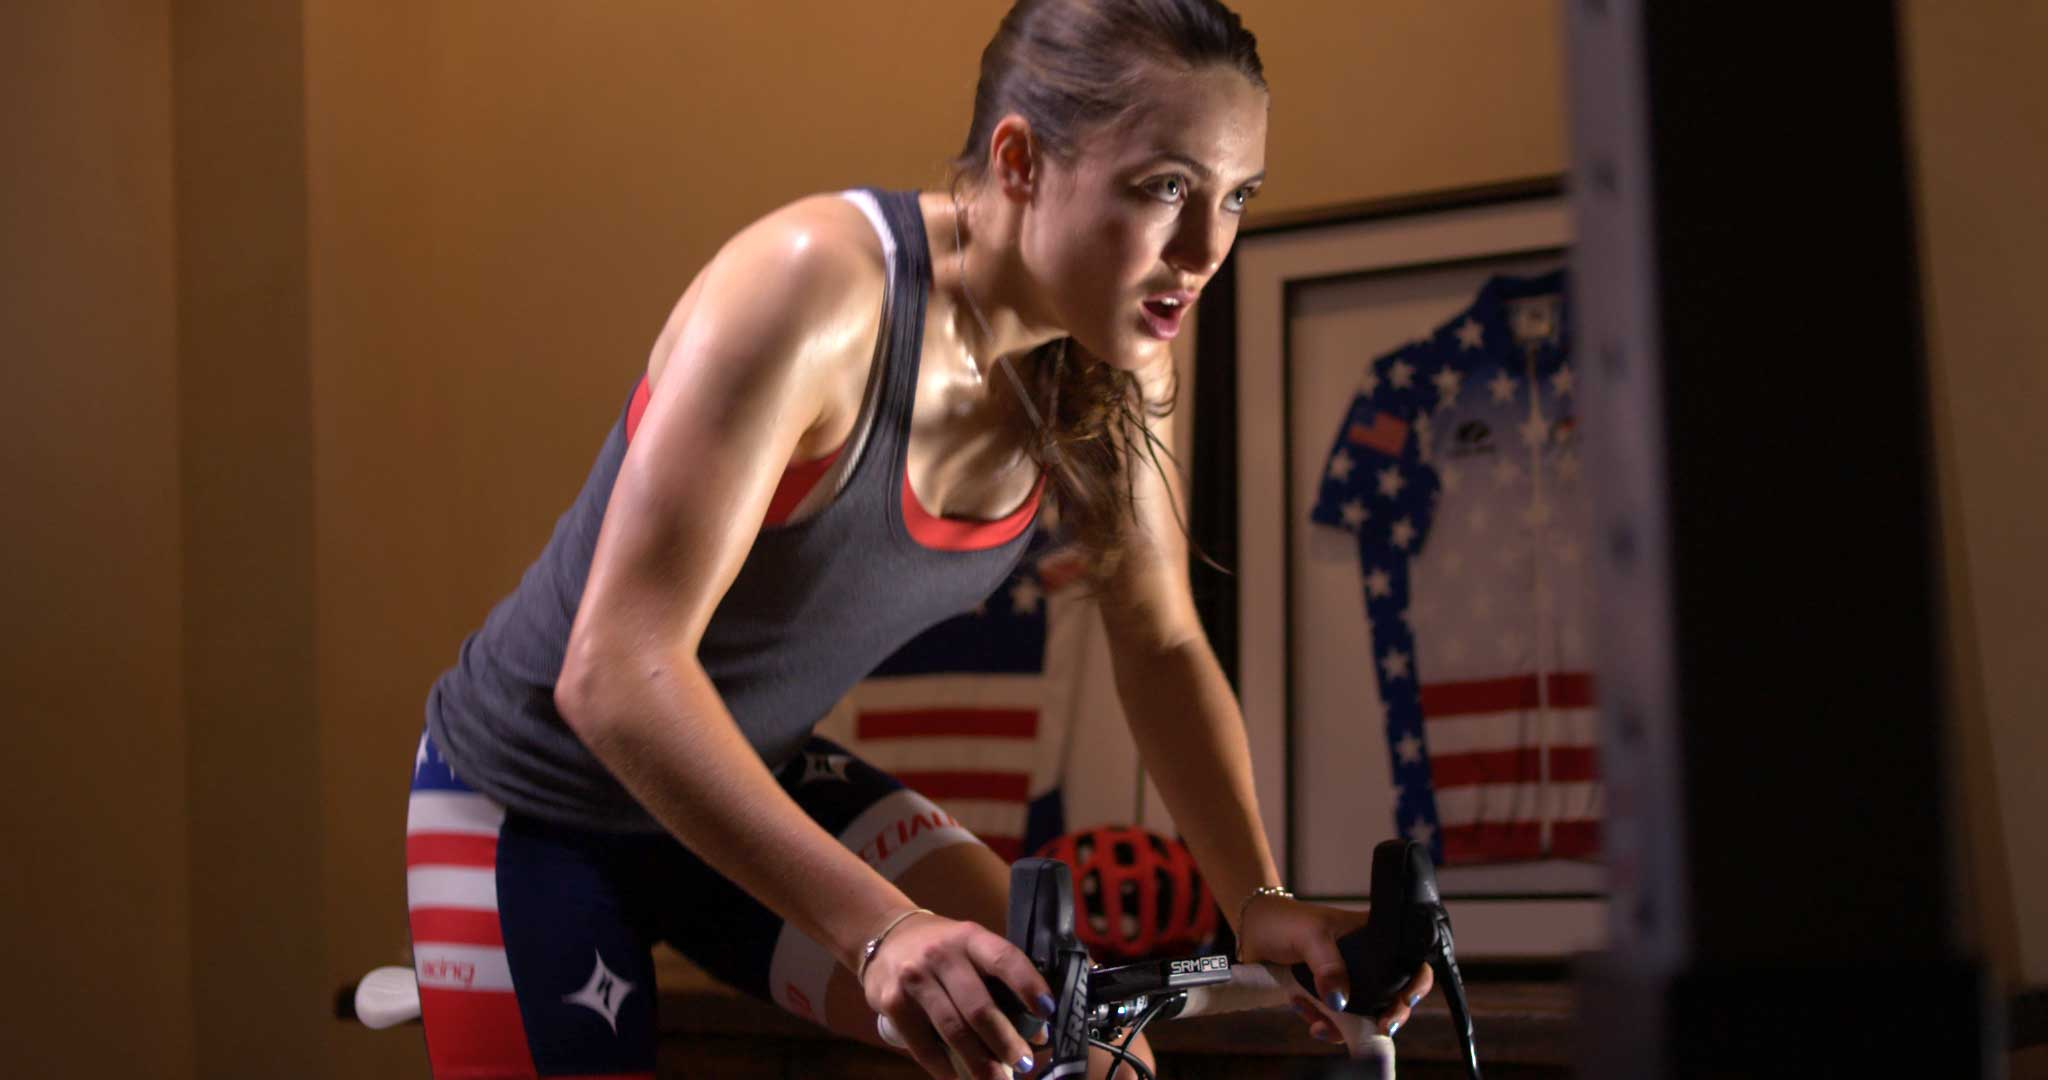 I-Am-Specialized-Kate-Courtney-Context-Image